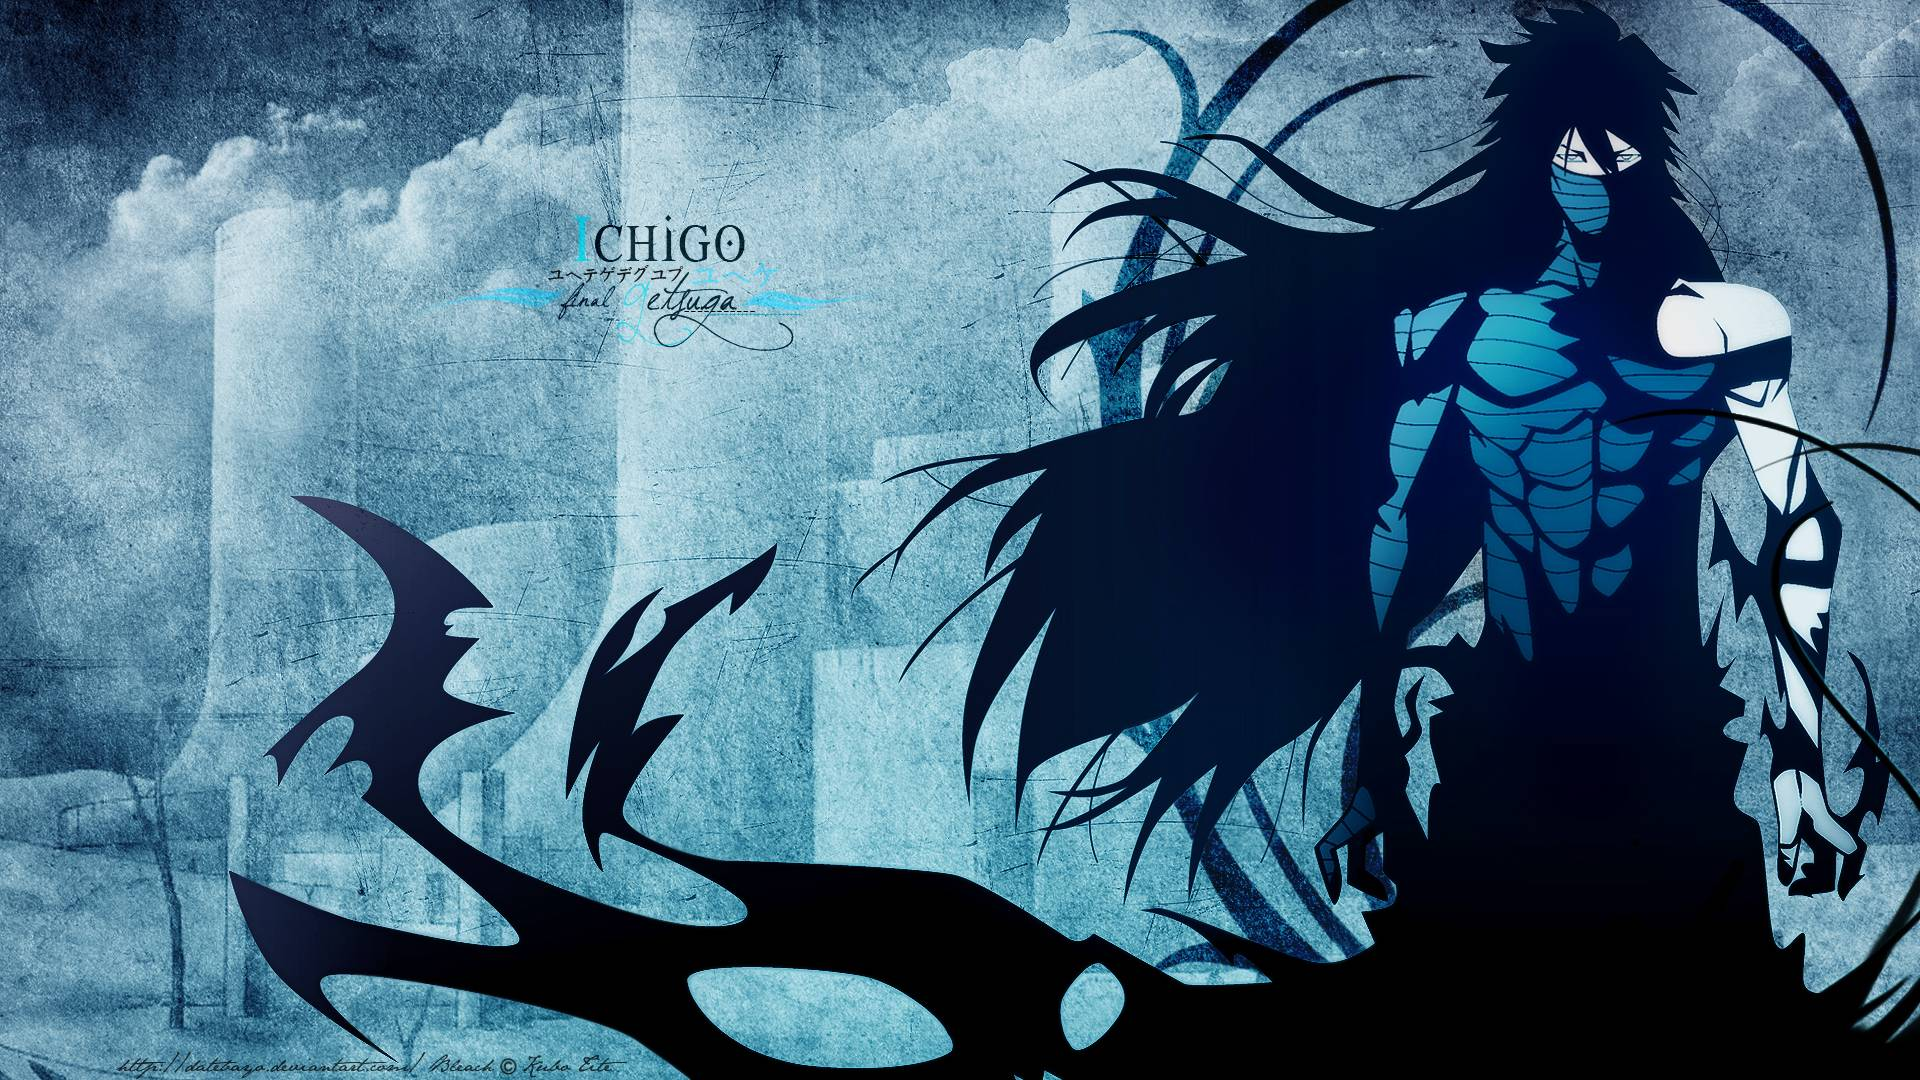 anime wallpaper 1920x1080 quotes - photo #38